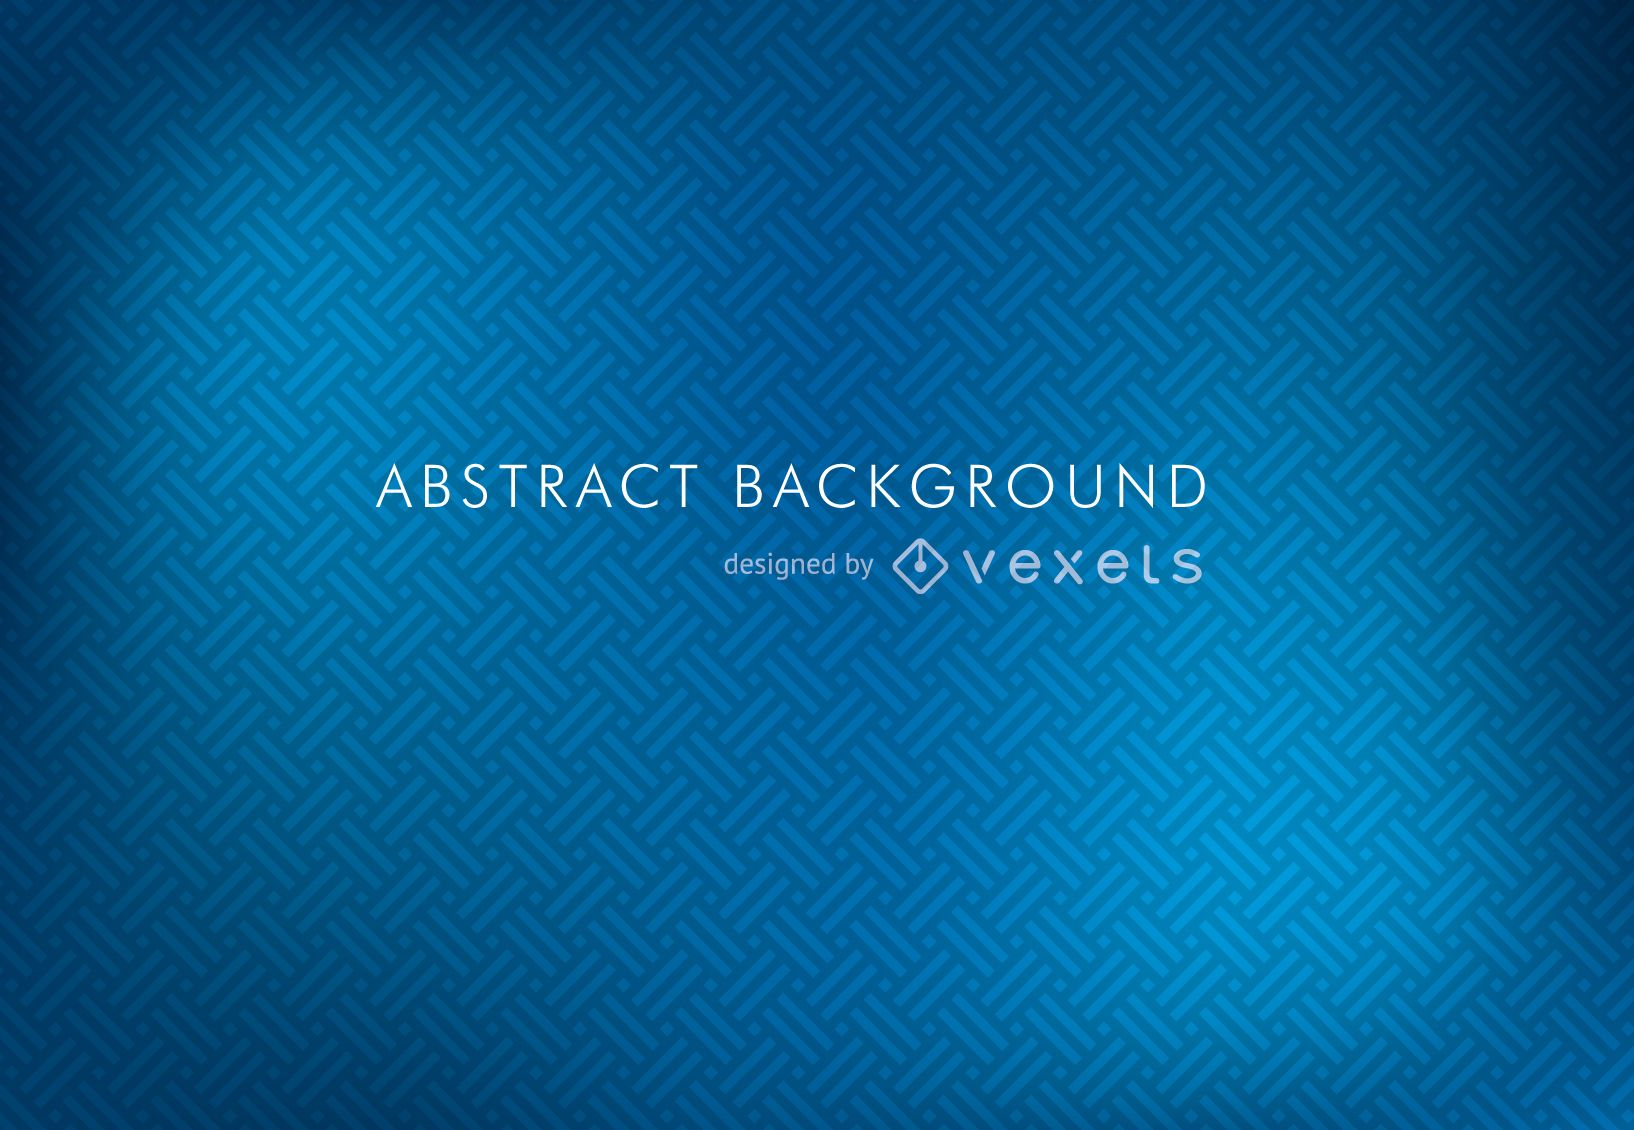 Abstract background pattern with geometric shapes